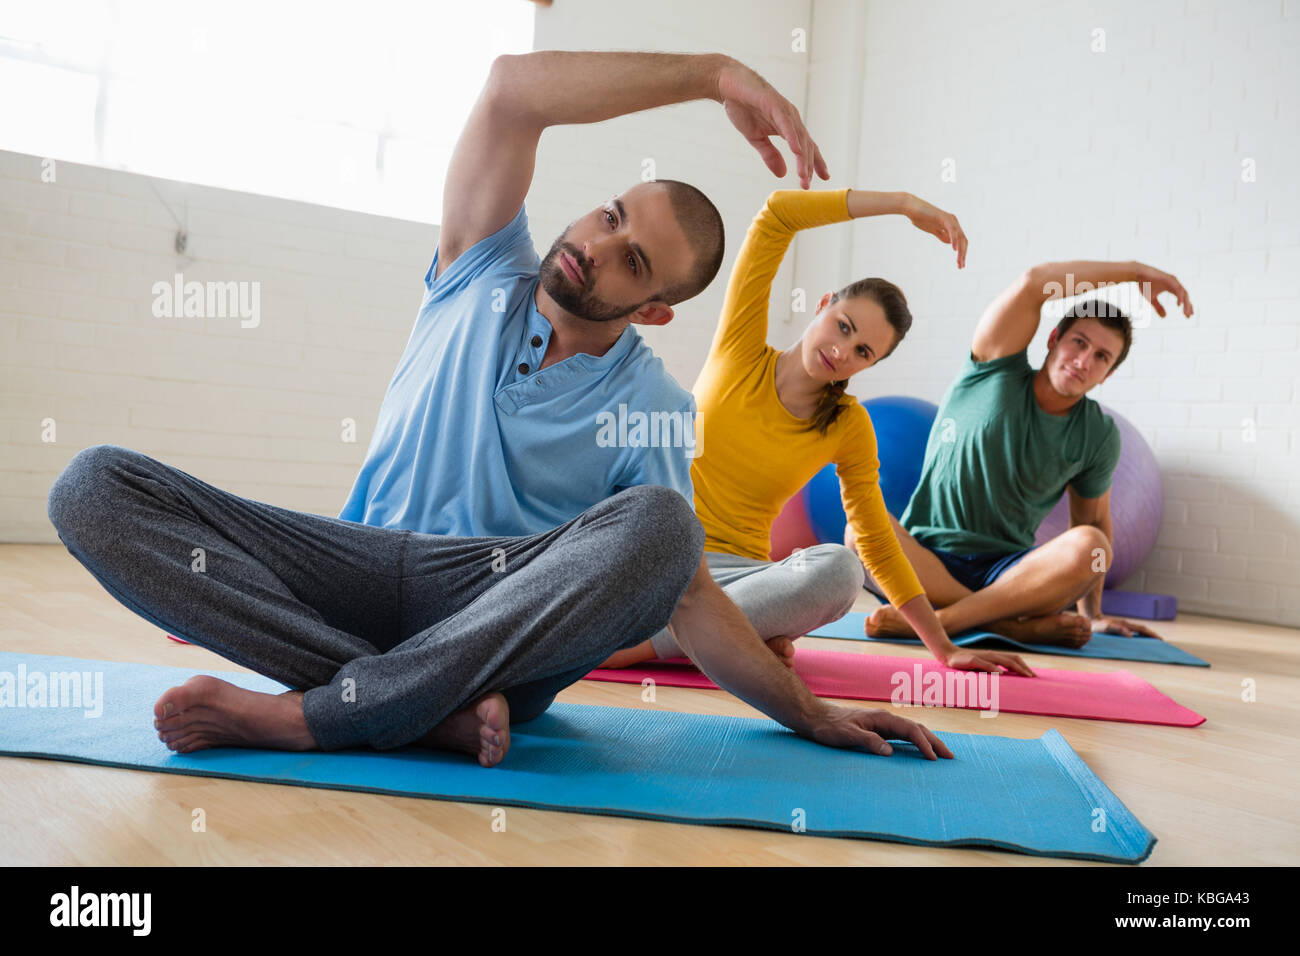 Male instructor with students exercising at yoga studio - Stock Image